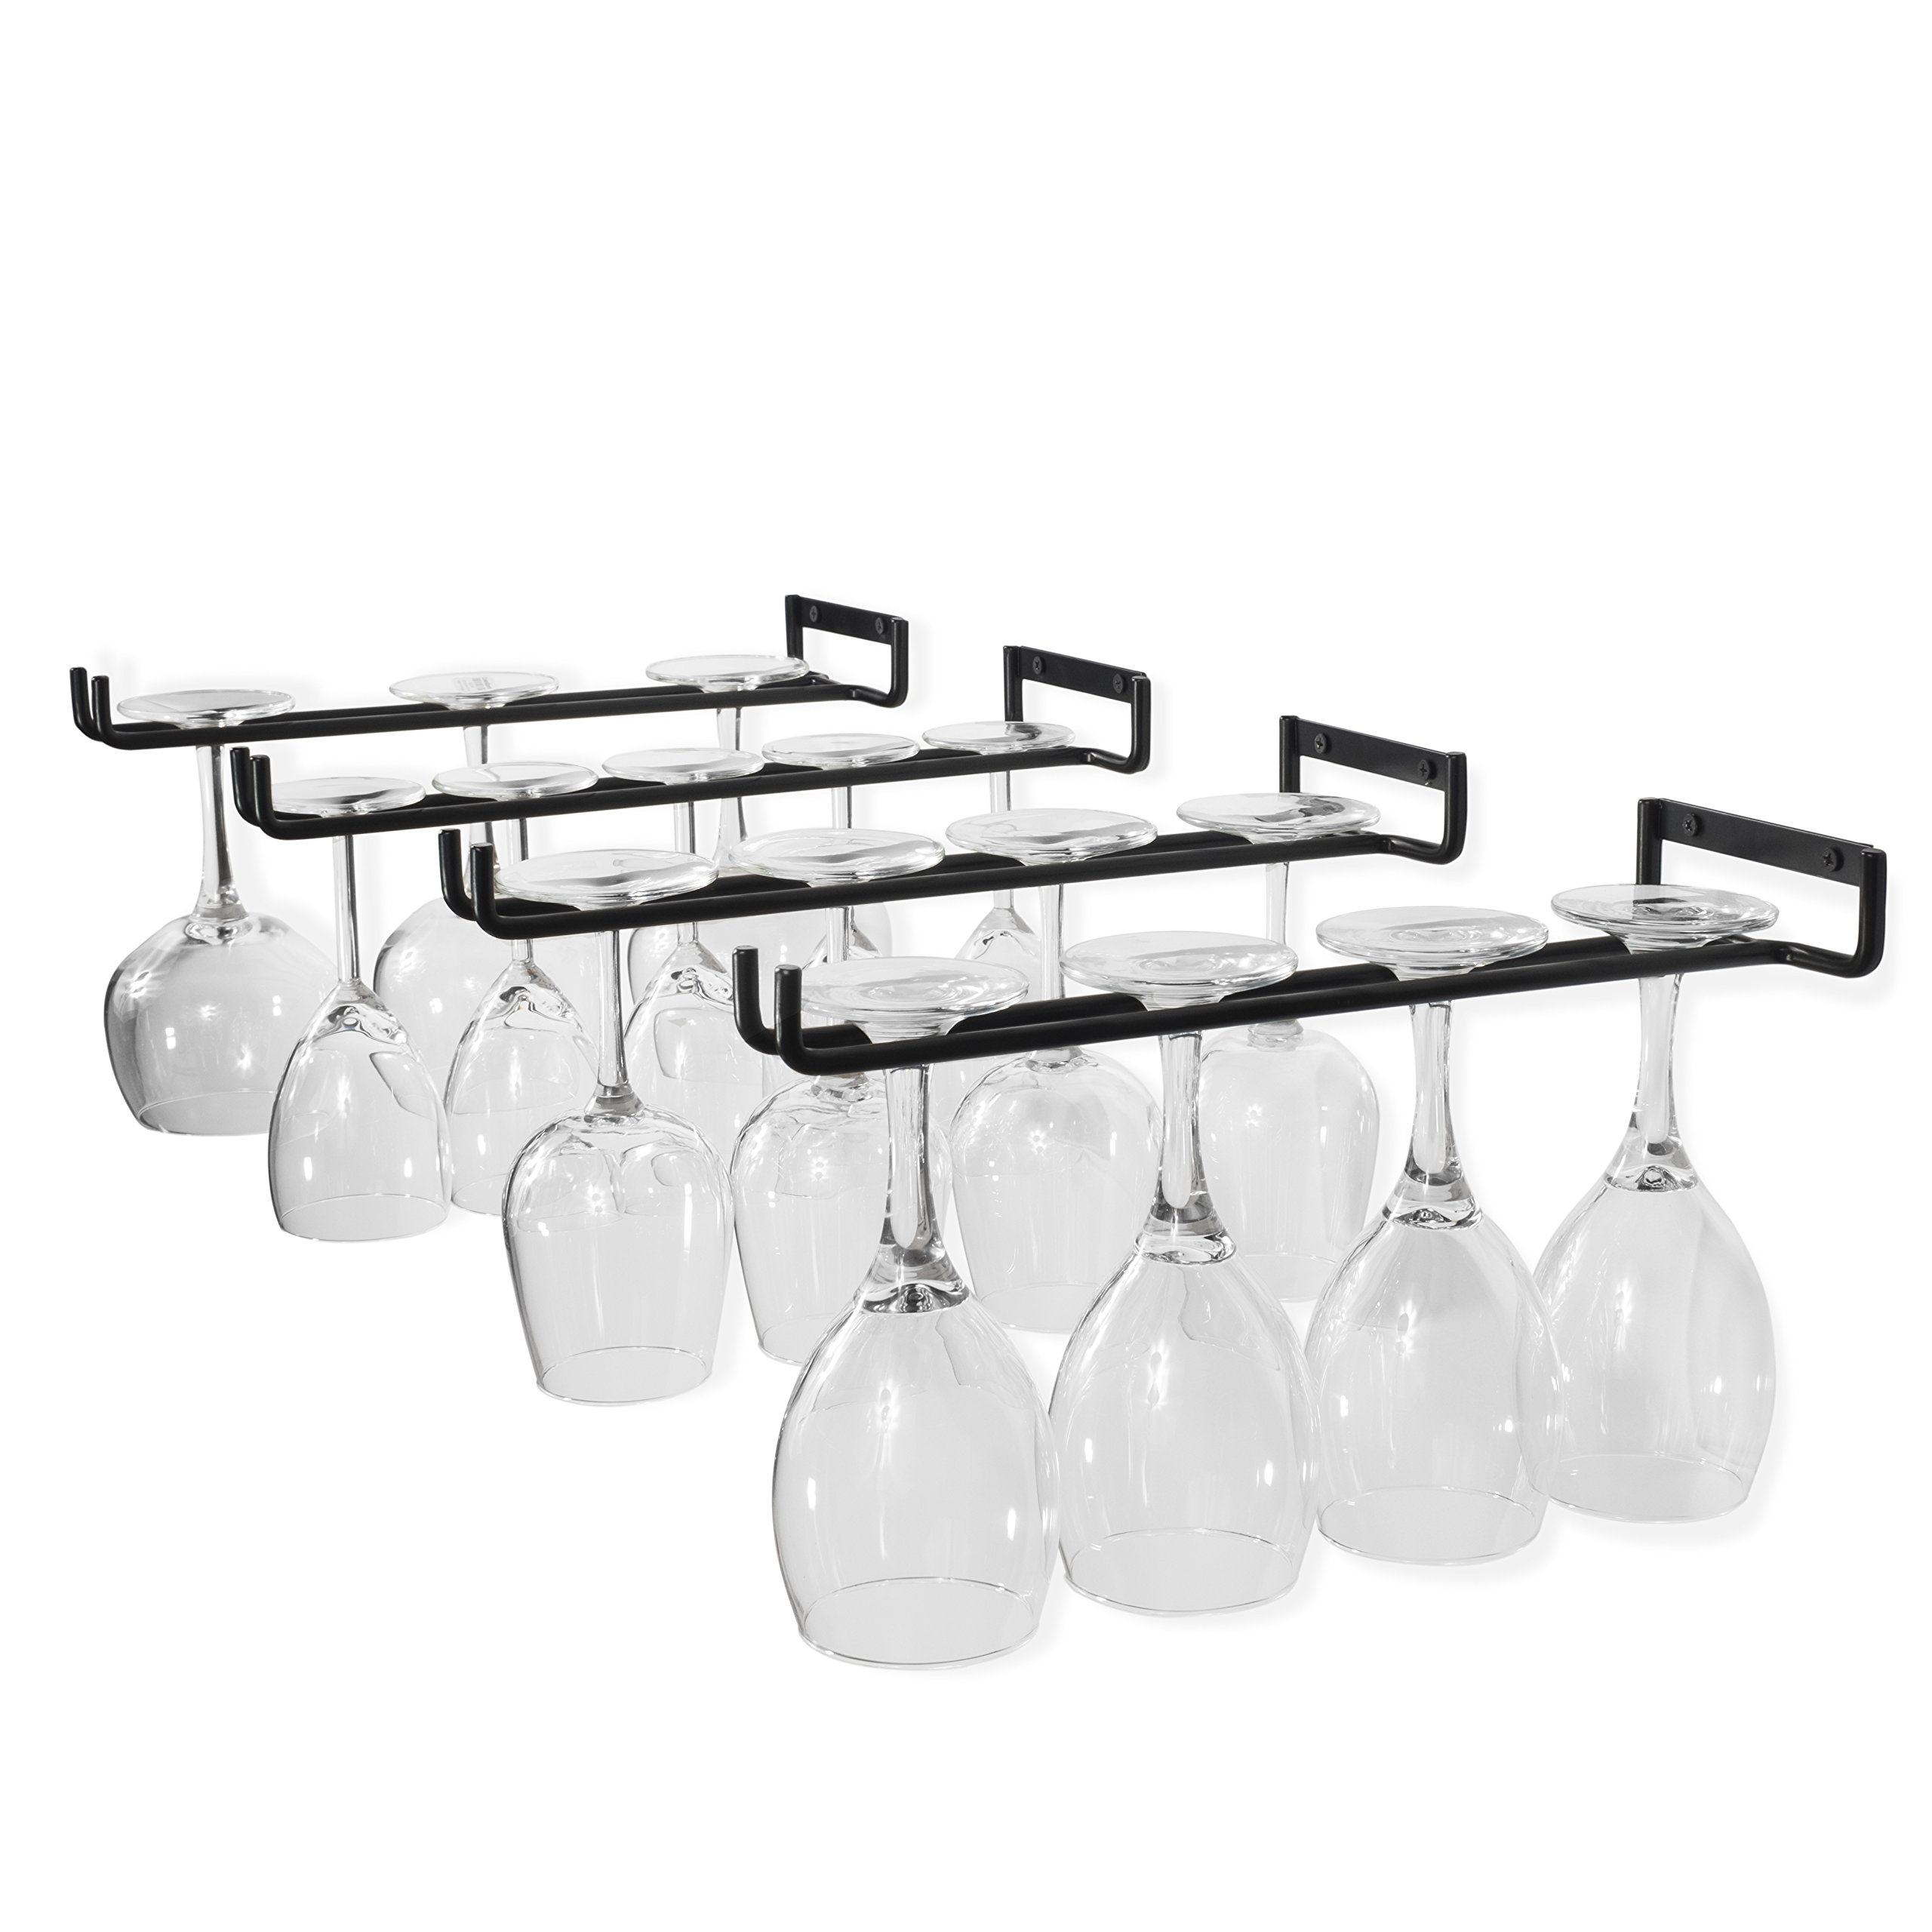 Wallniture Wine Glass Holder Stemware Rack Wall Mountable Heavy Duty Thick Wrought Iron Black 15 Inch Set of 4 by Wallniture